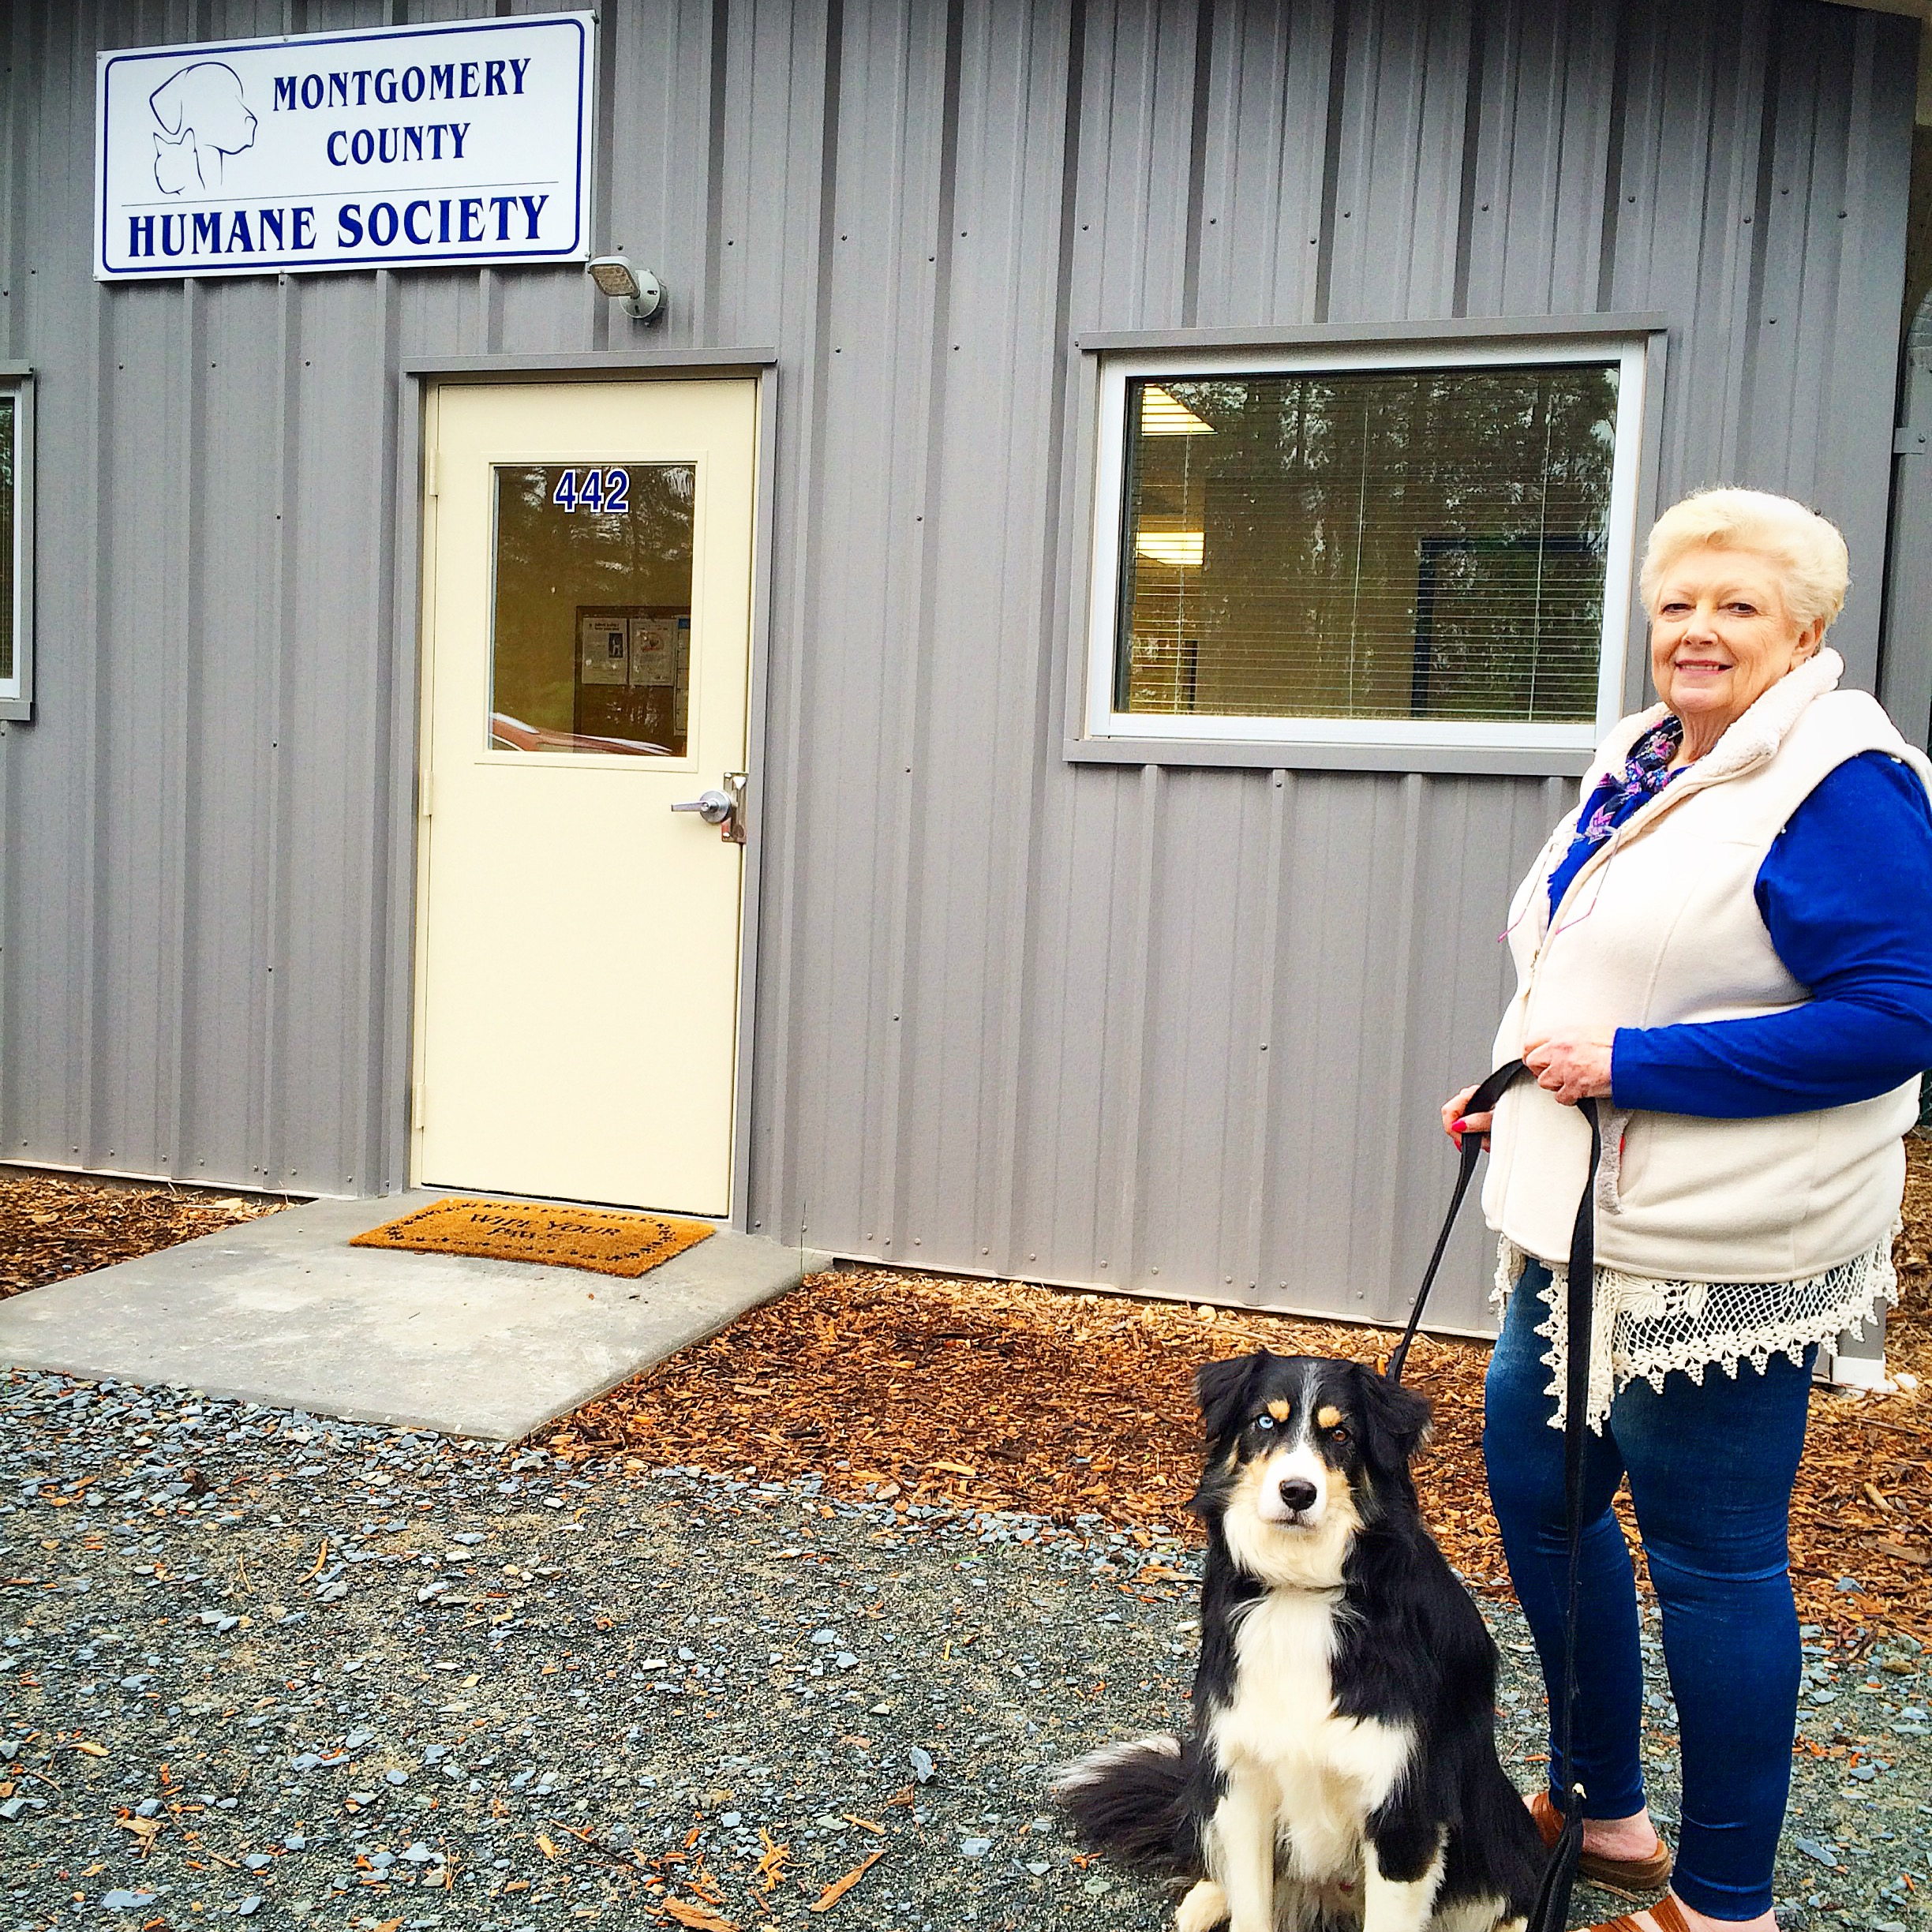 Montgomery County Humane Society Positive Change Continues